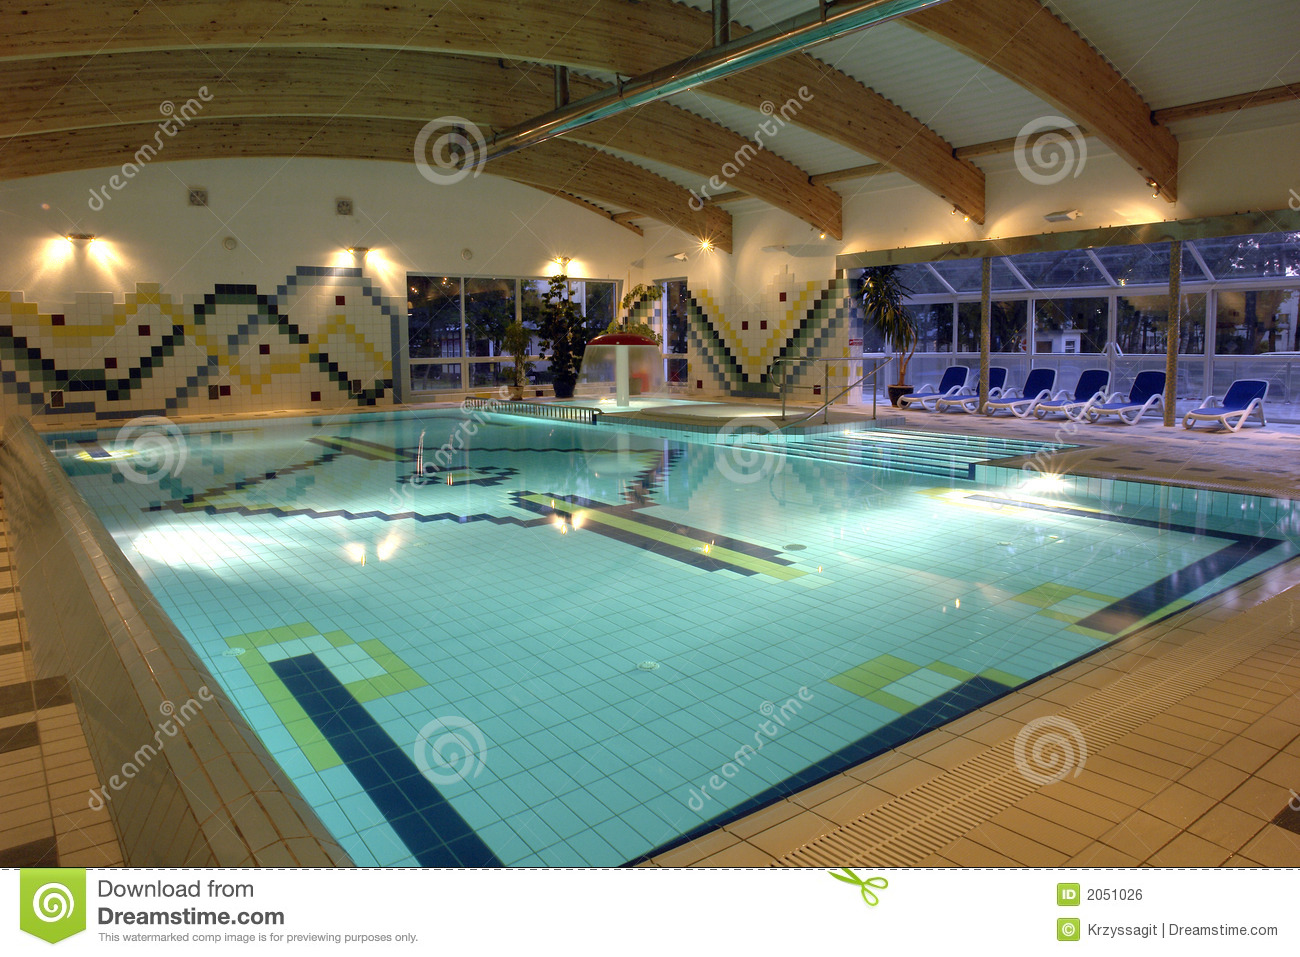 Swimming pool indoor empty royalty free stock image for Unused swimming pool